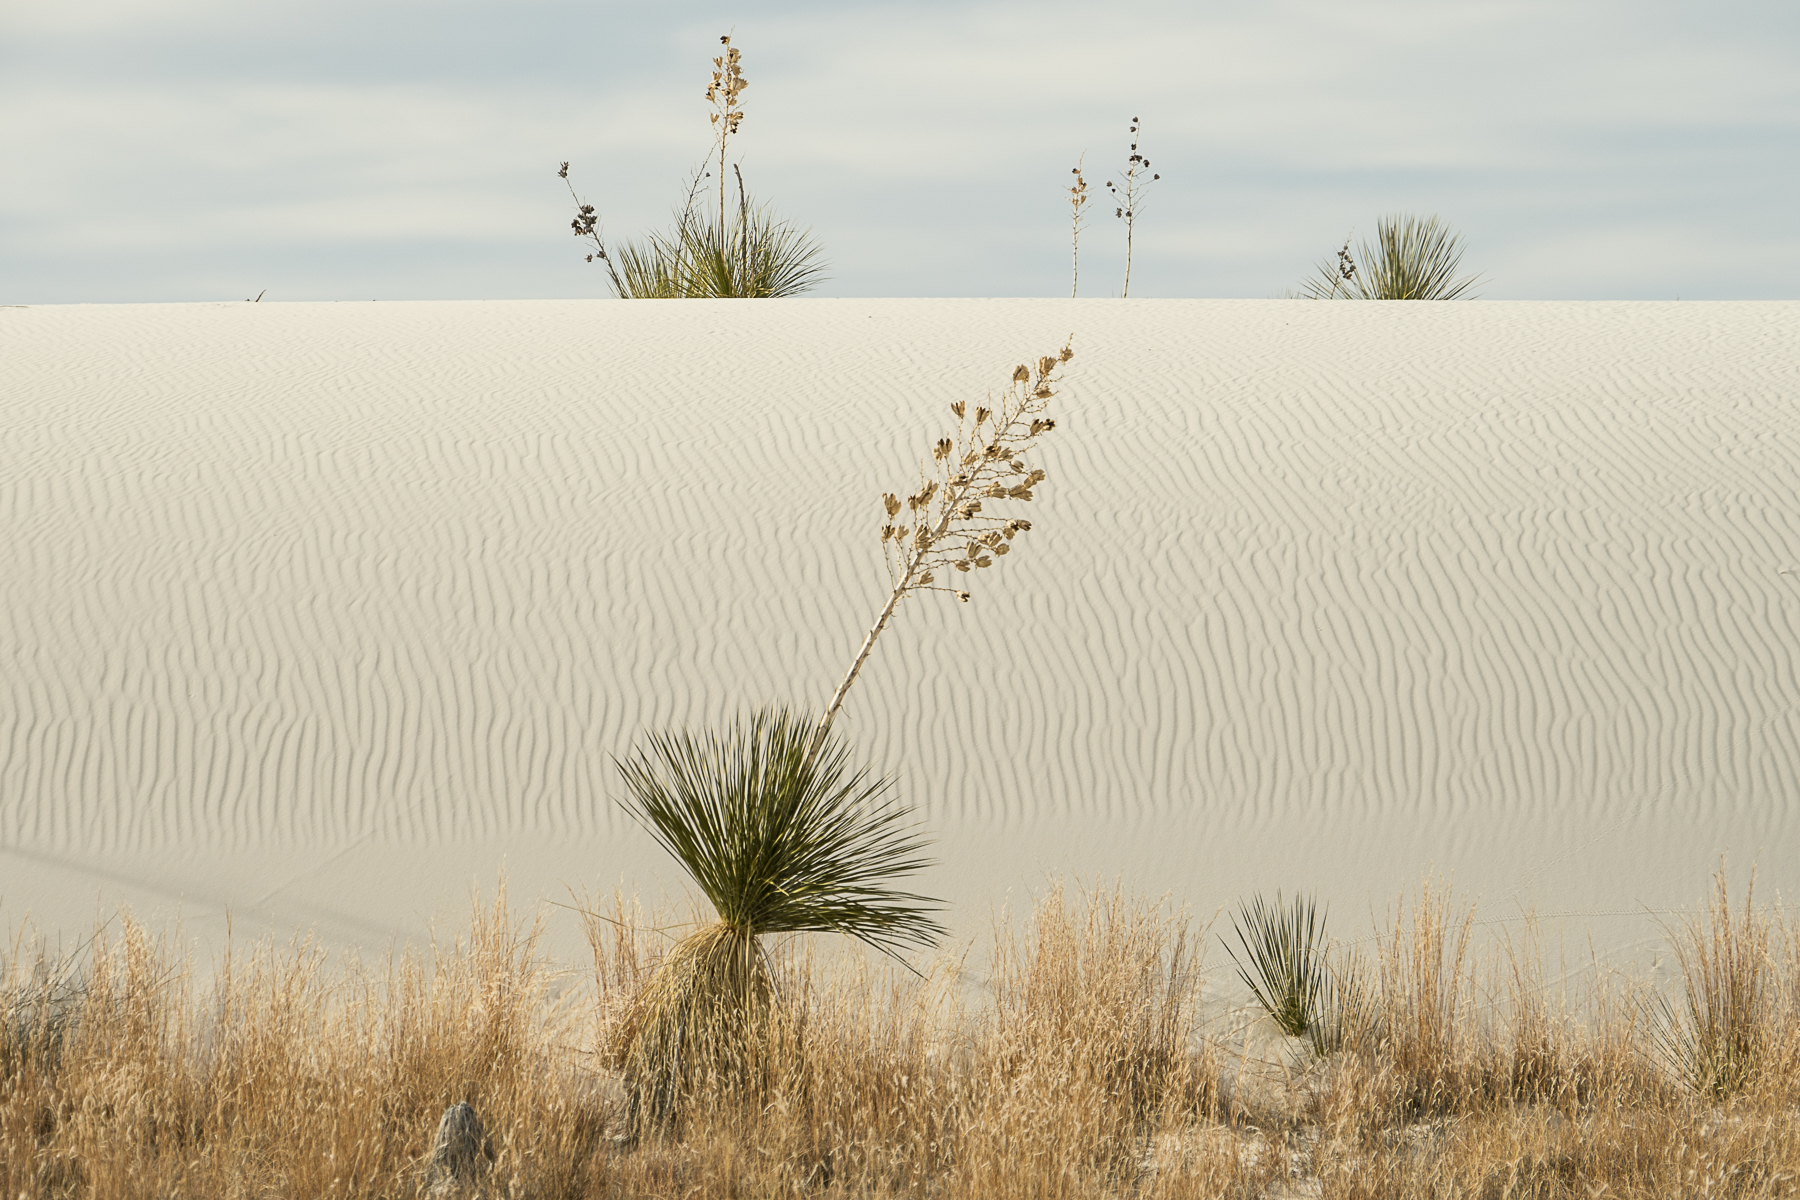 White Sands, New Mexico, desert, agave, yucca, National Monument